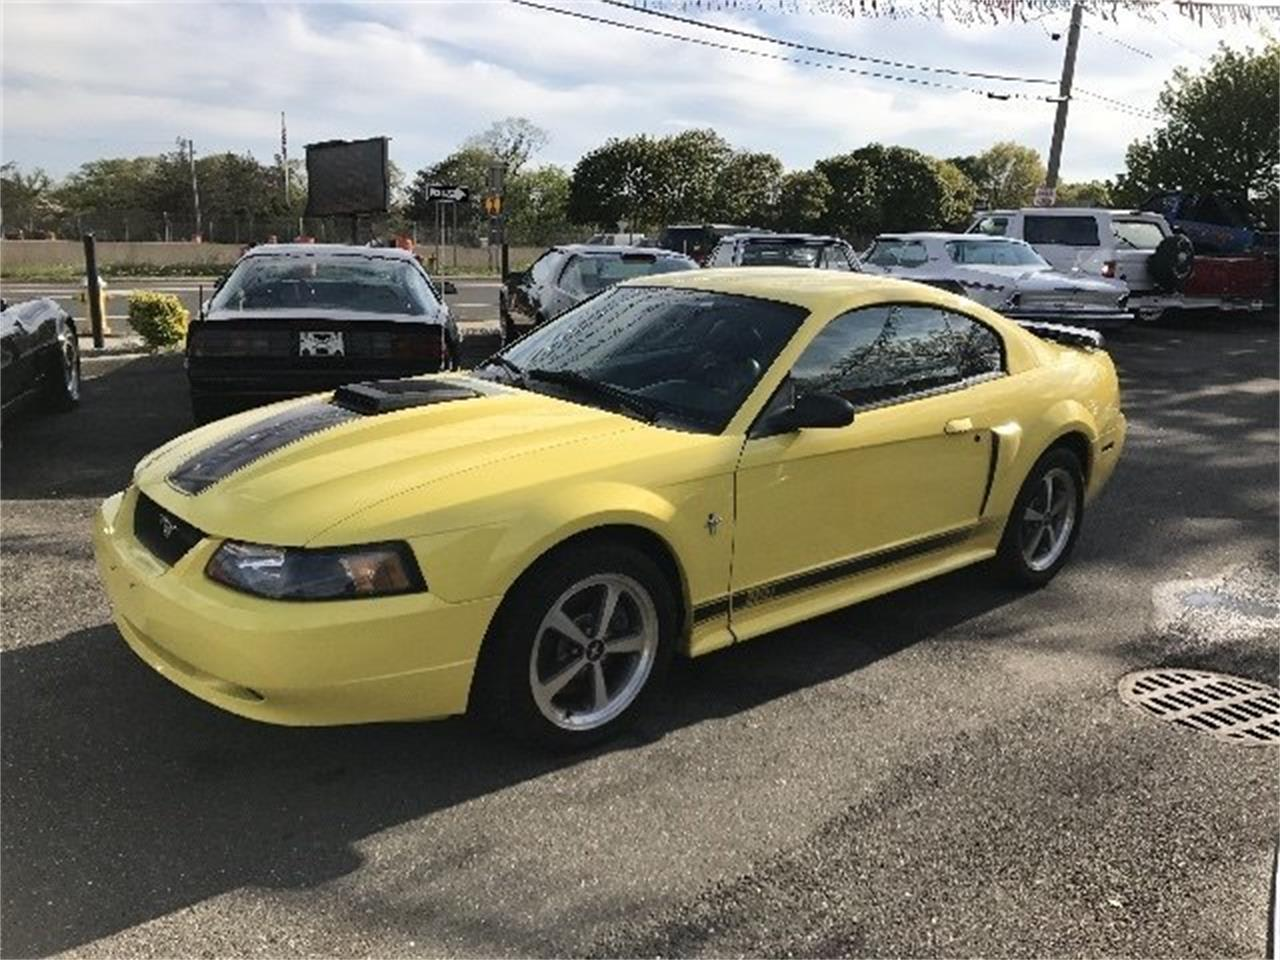 Large picture of 03 mustang mach 1 ldh2